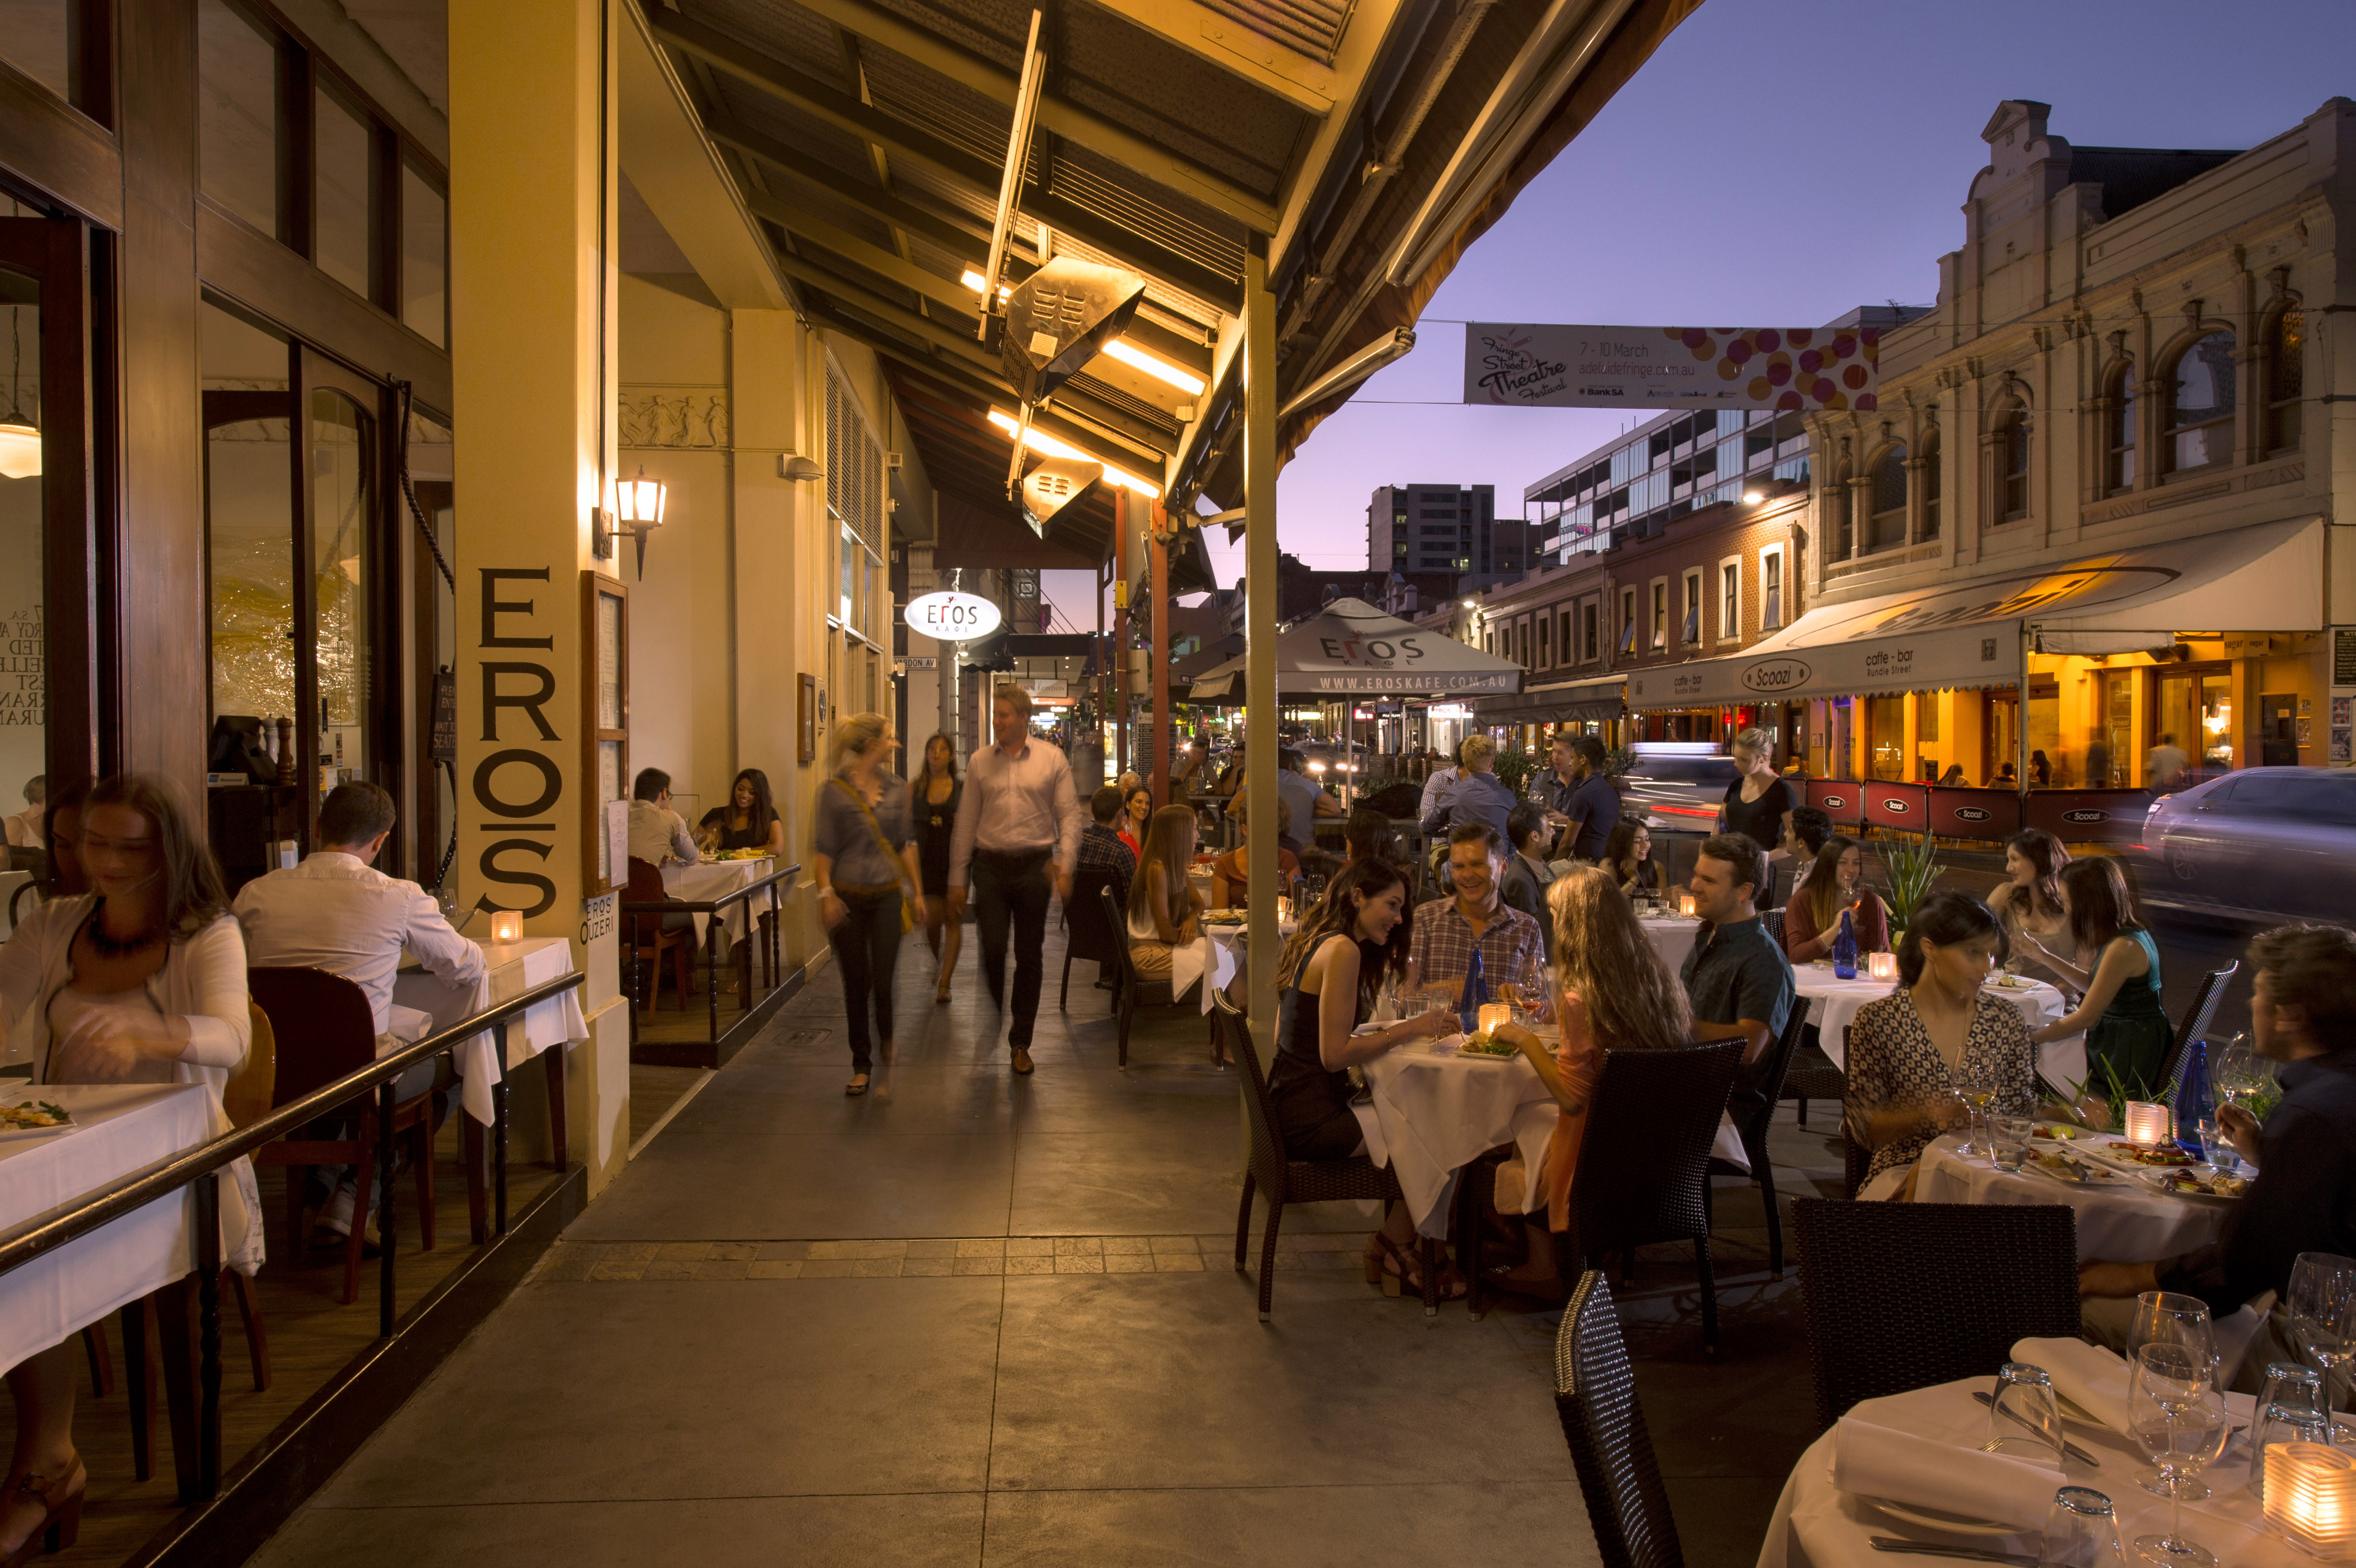 People dining at outdoor tables in Adelaide.